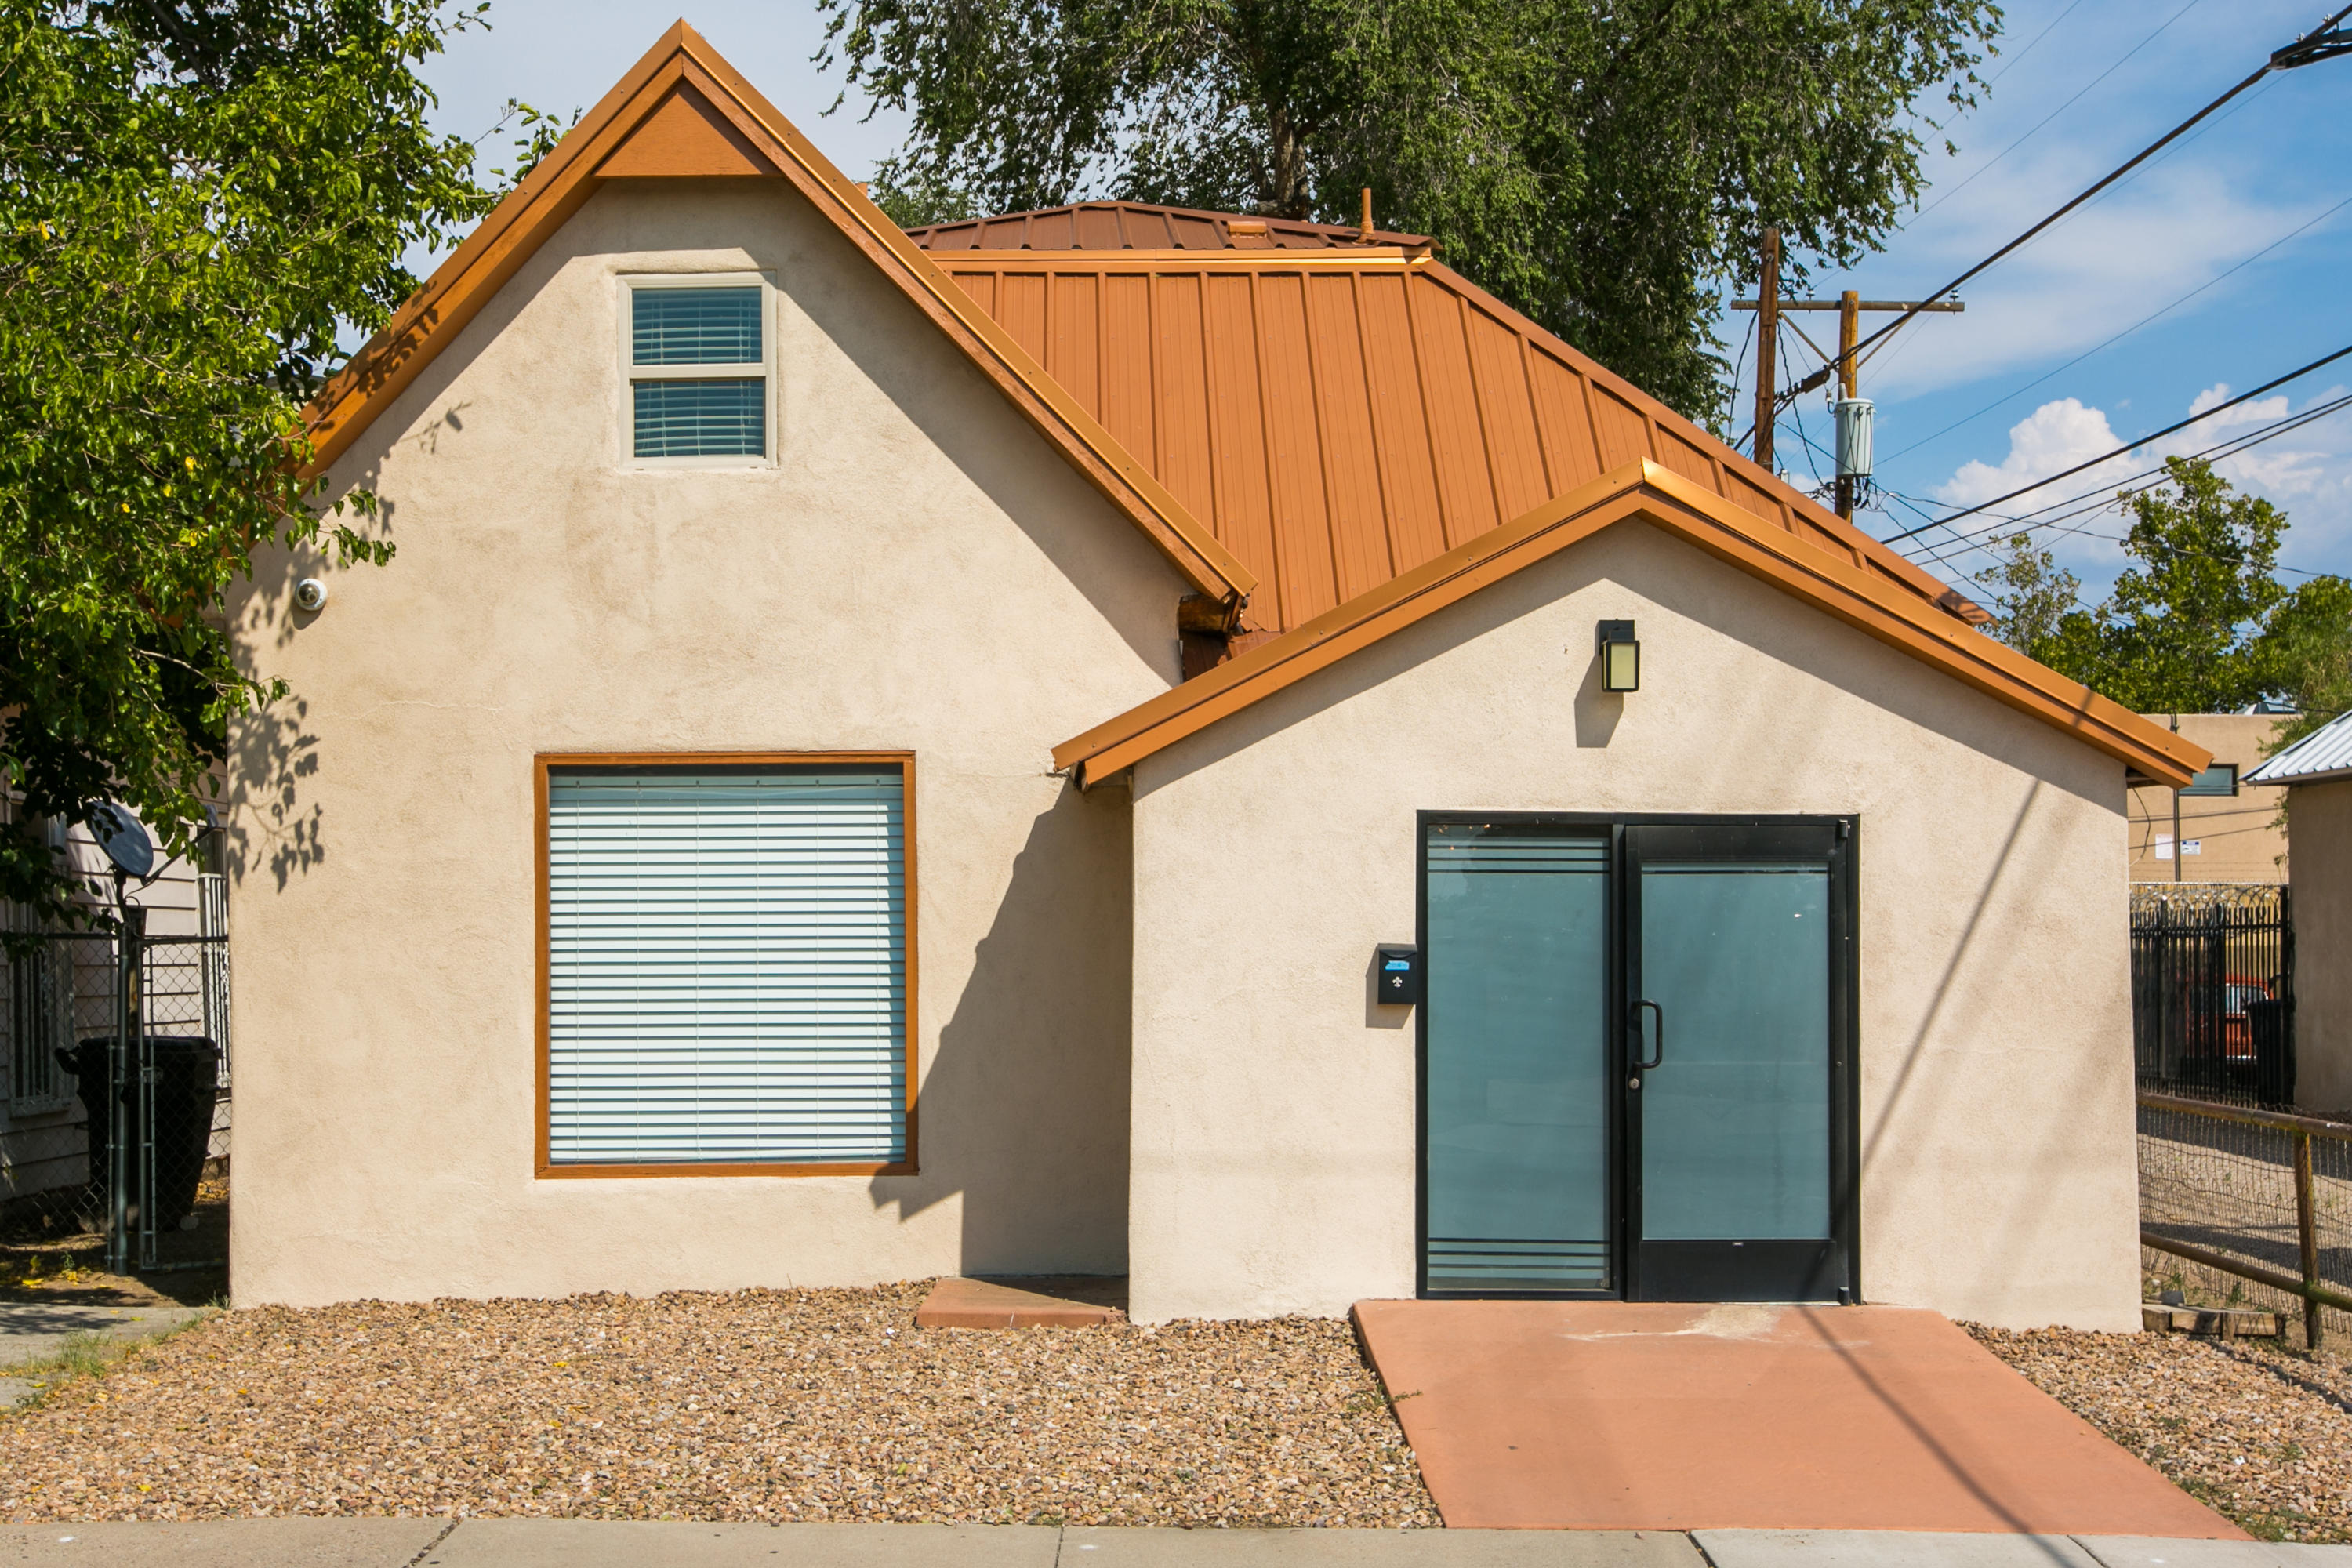 Whether you are looking for affordable work/live space, owning your own office or gallery space or diversifying your RE portfolio into both residential & commercial markets - this may be the property for you. Let your imagination run wild - art gallery, vacation rental, law firm. Salon. Located .07miles from the heart of downtown ABQ this live/workspace has a driveway, on street parking & shares closed alley. Modern finishes: metal roof, refrigerated air, granite countertops, sleek lacquer cabinets, tile accents, recessed & brushed nickel fixtures/ceiling fans, gleaming white smooth textured walls, in vogue durable epoxy painted floors look like polished concrete, 2 remodeled baths, vinyl windows& freshly painted exterior. Current configuration has an open concept main level,